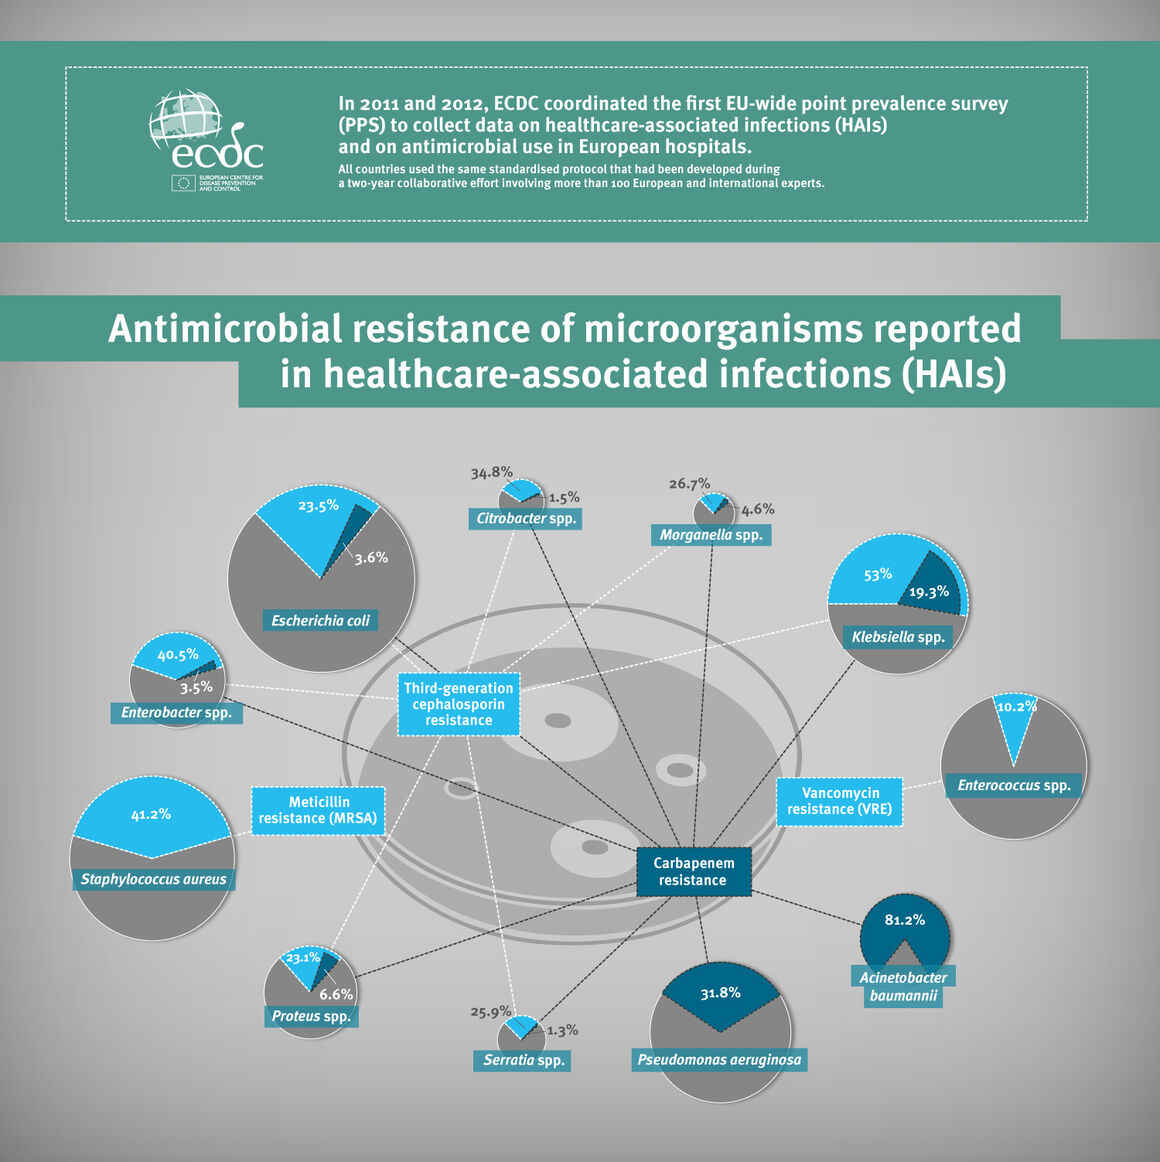 Infographic showing antimicrobial resistance in healthcare-associated infections